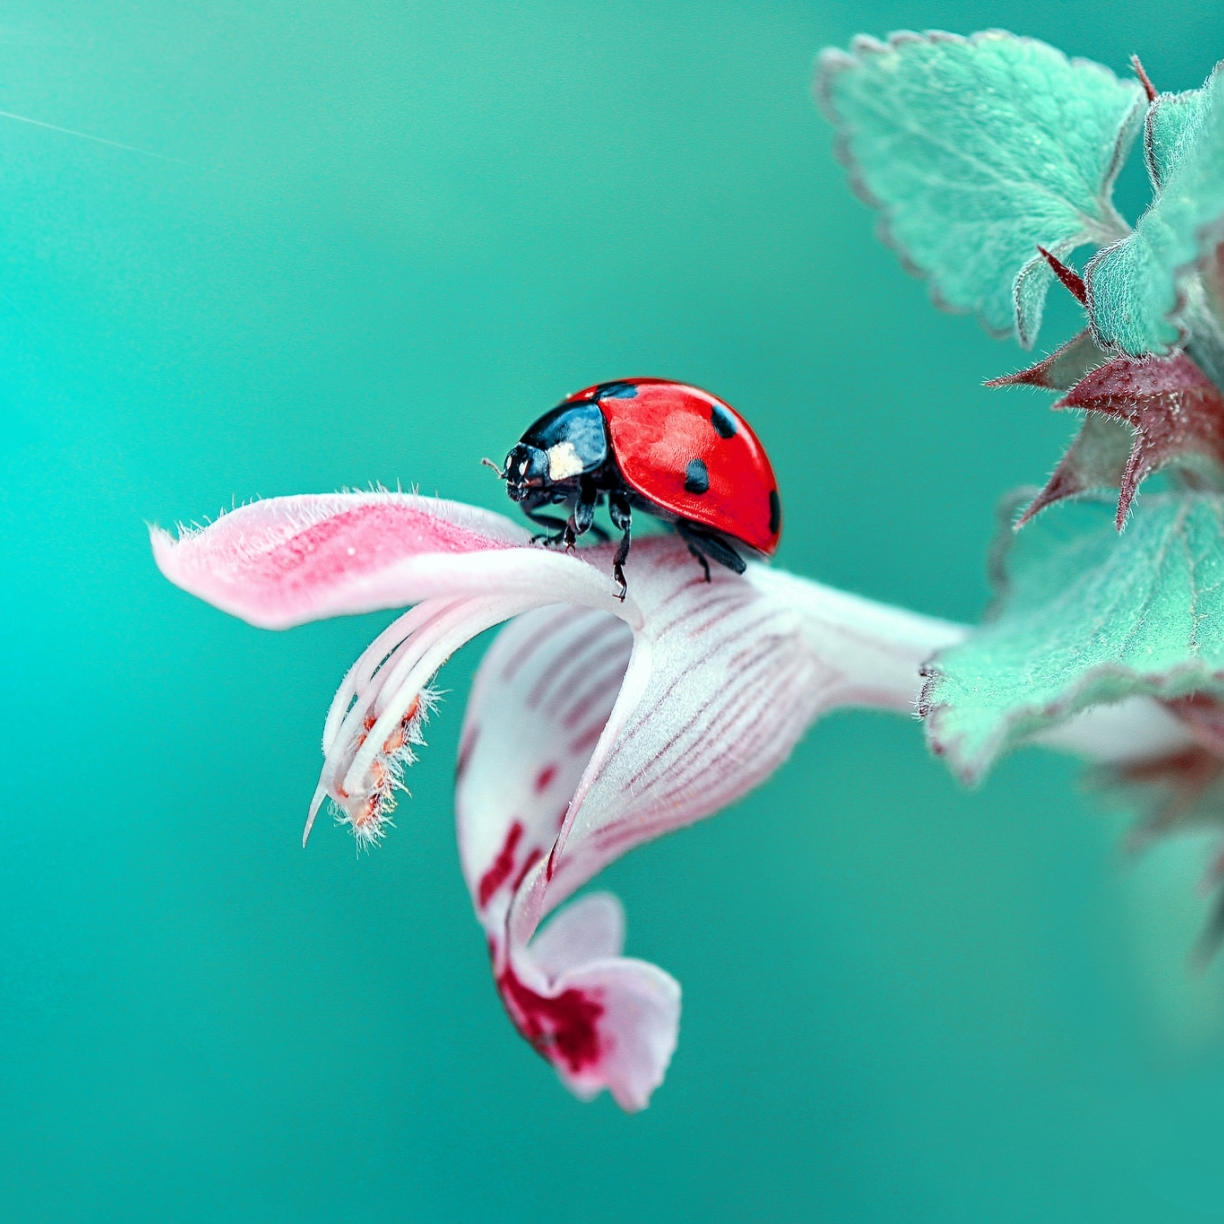 Insect Ladybug Macro, Full HD 2K Wallpaper